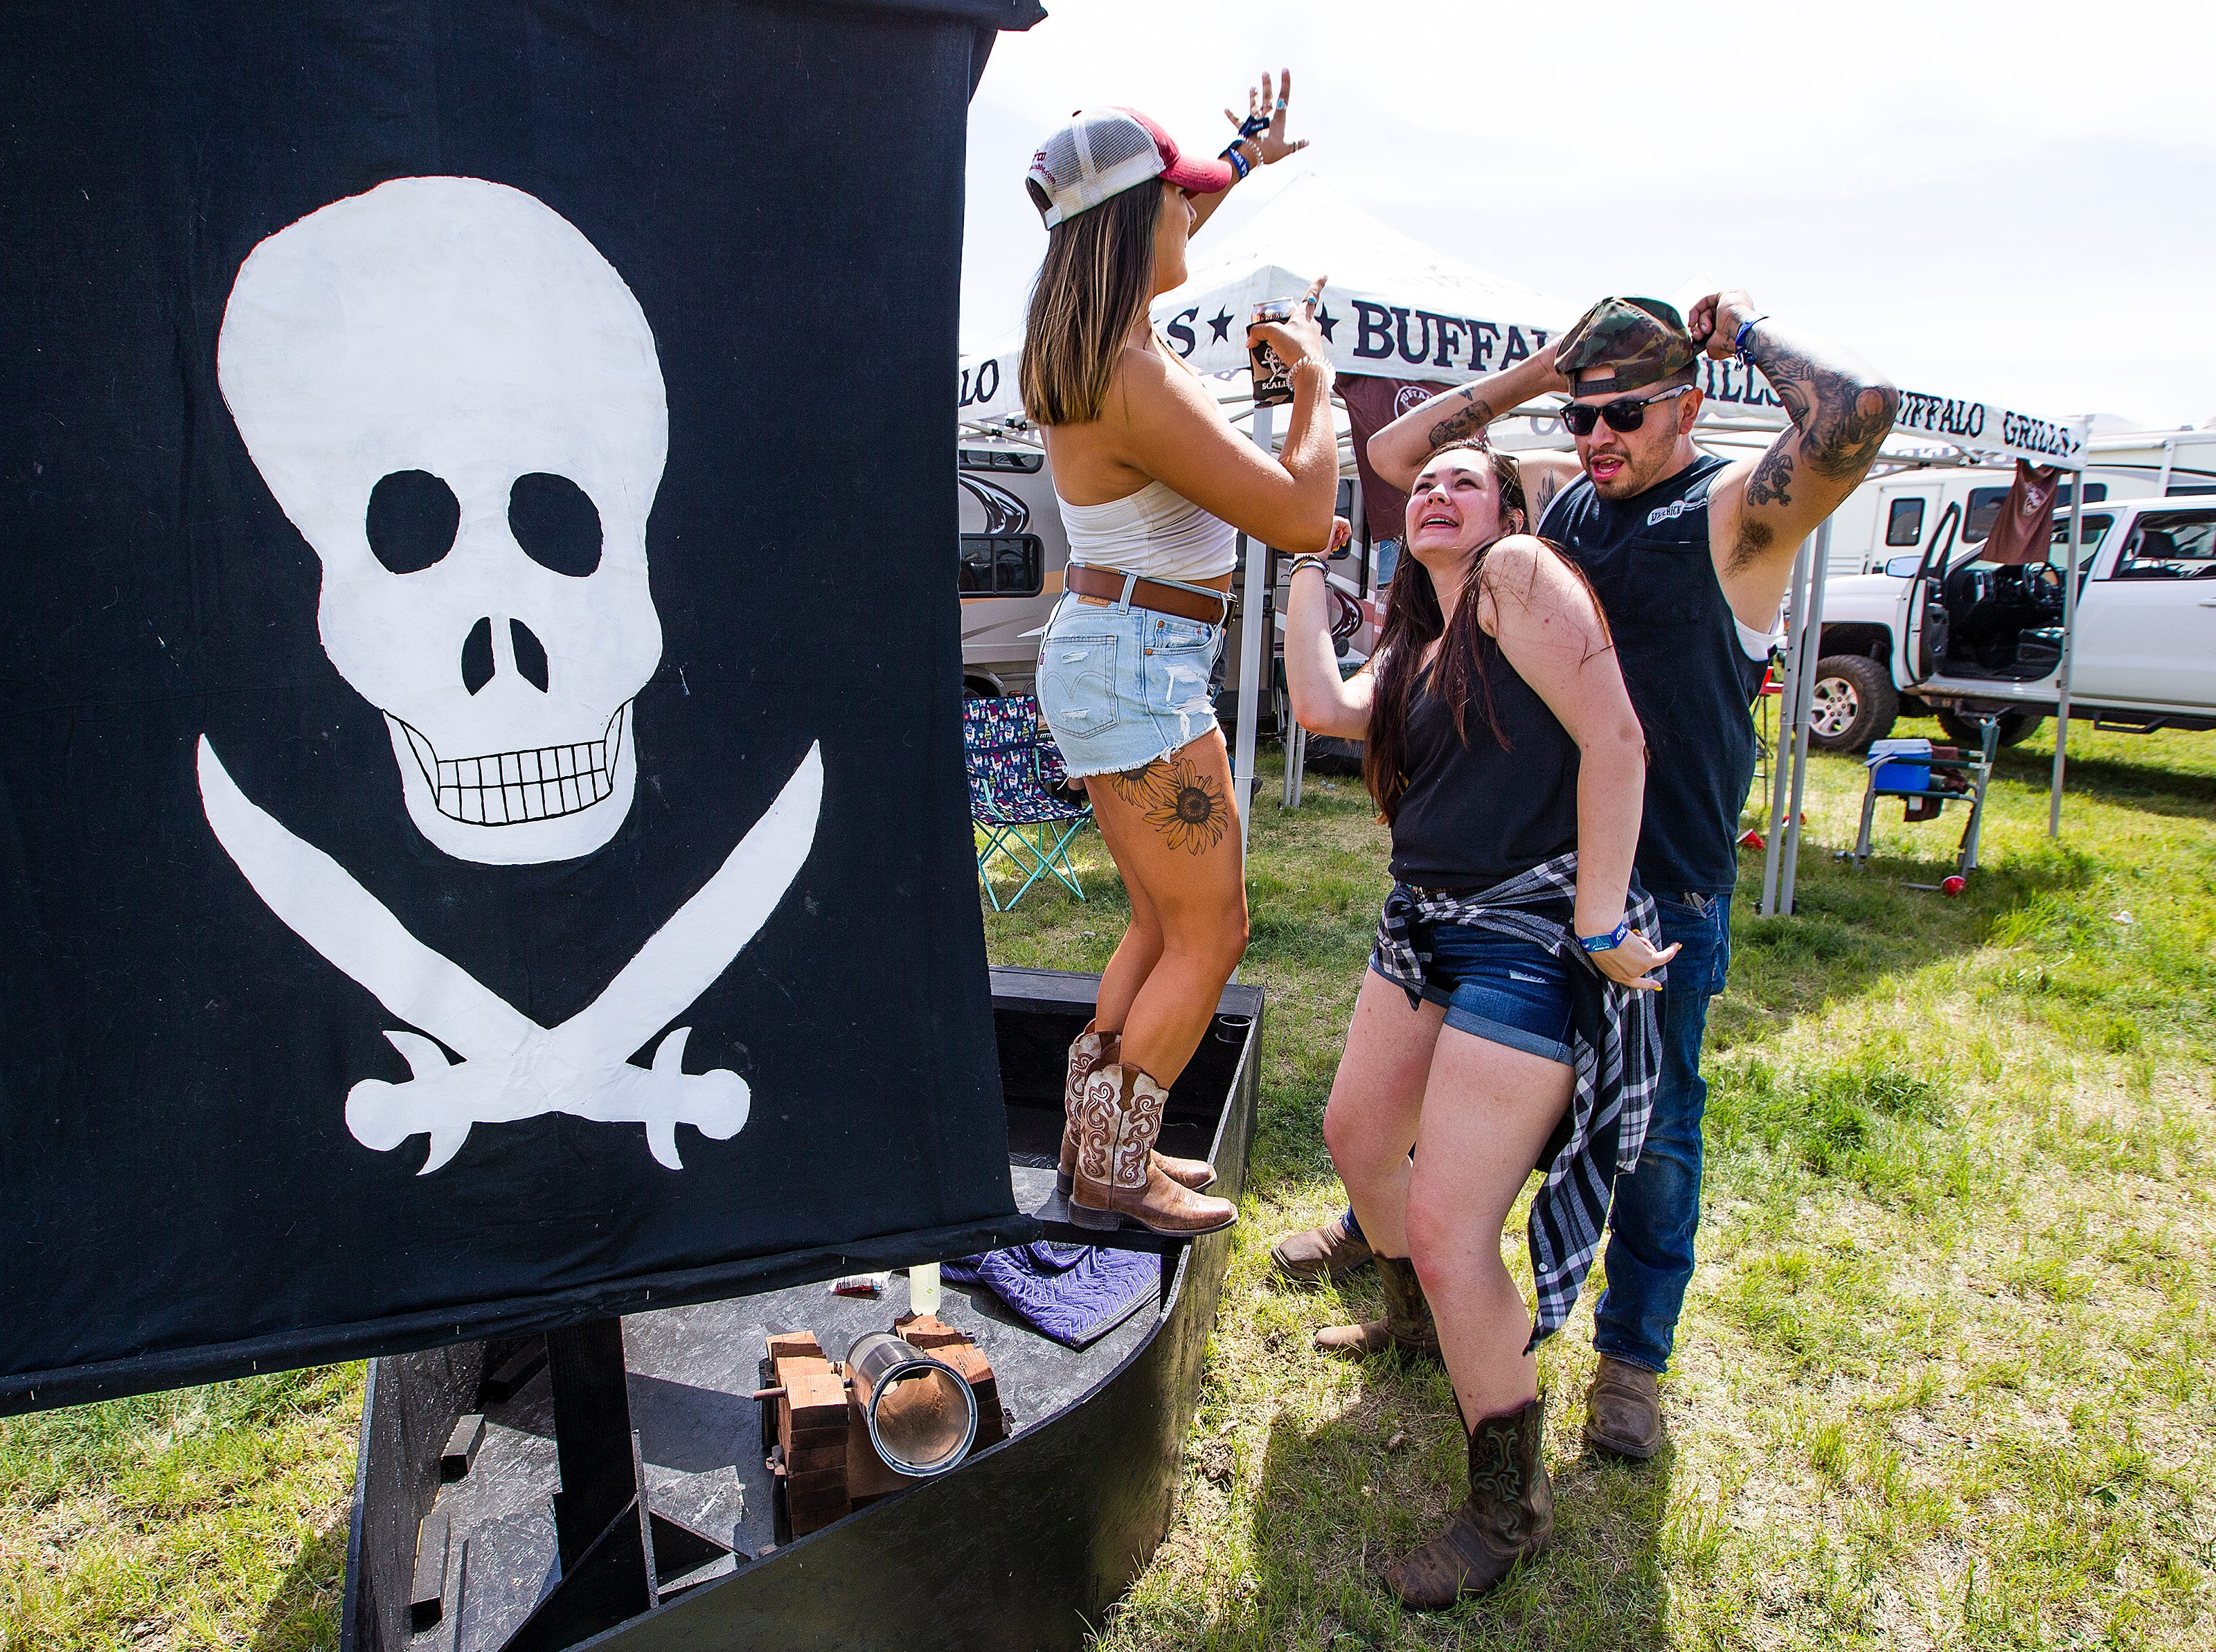 Samantha Weiss, 26, Chandler, Becca White, 27, Mesa, and Ron Borquez, 28, Tucson, dance at the Country Thunder Arizona 2019 music festival, Thursday , April 11, 2019.